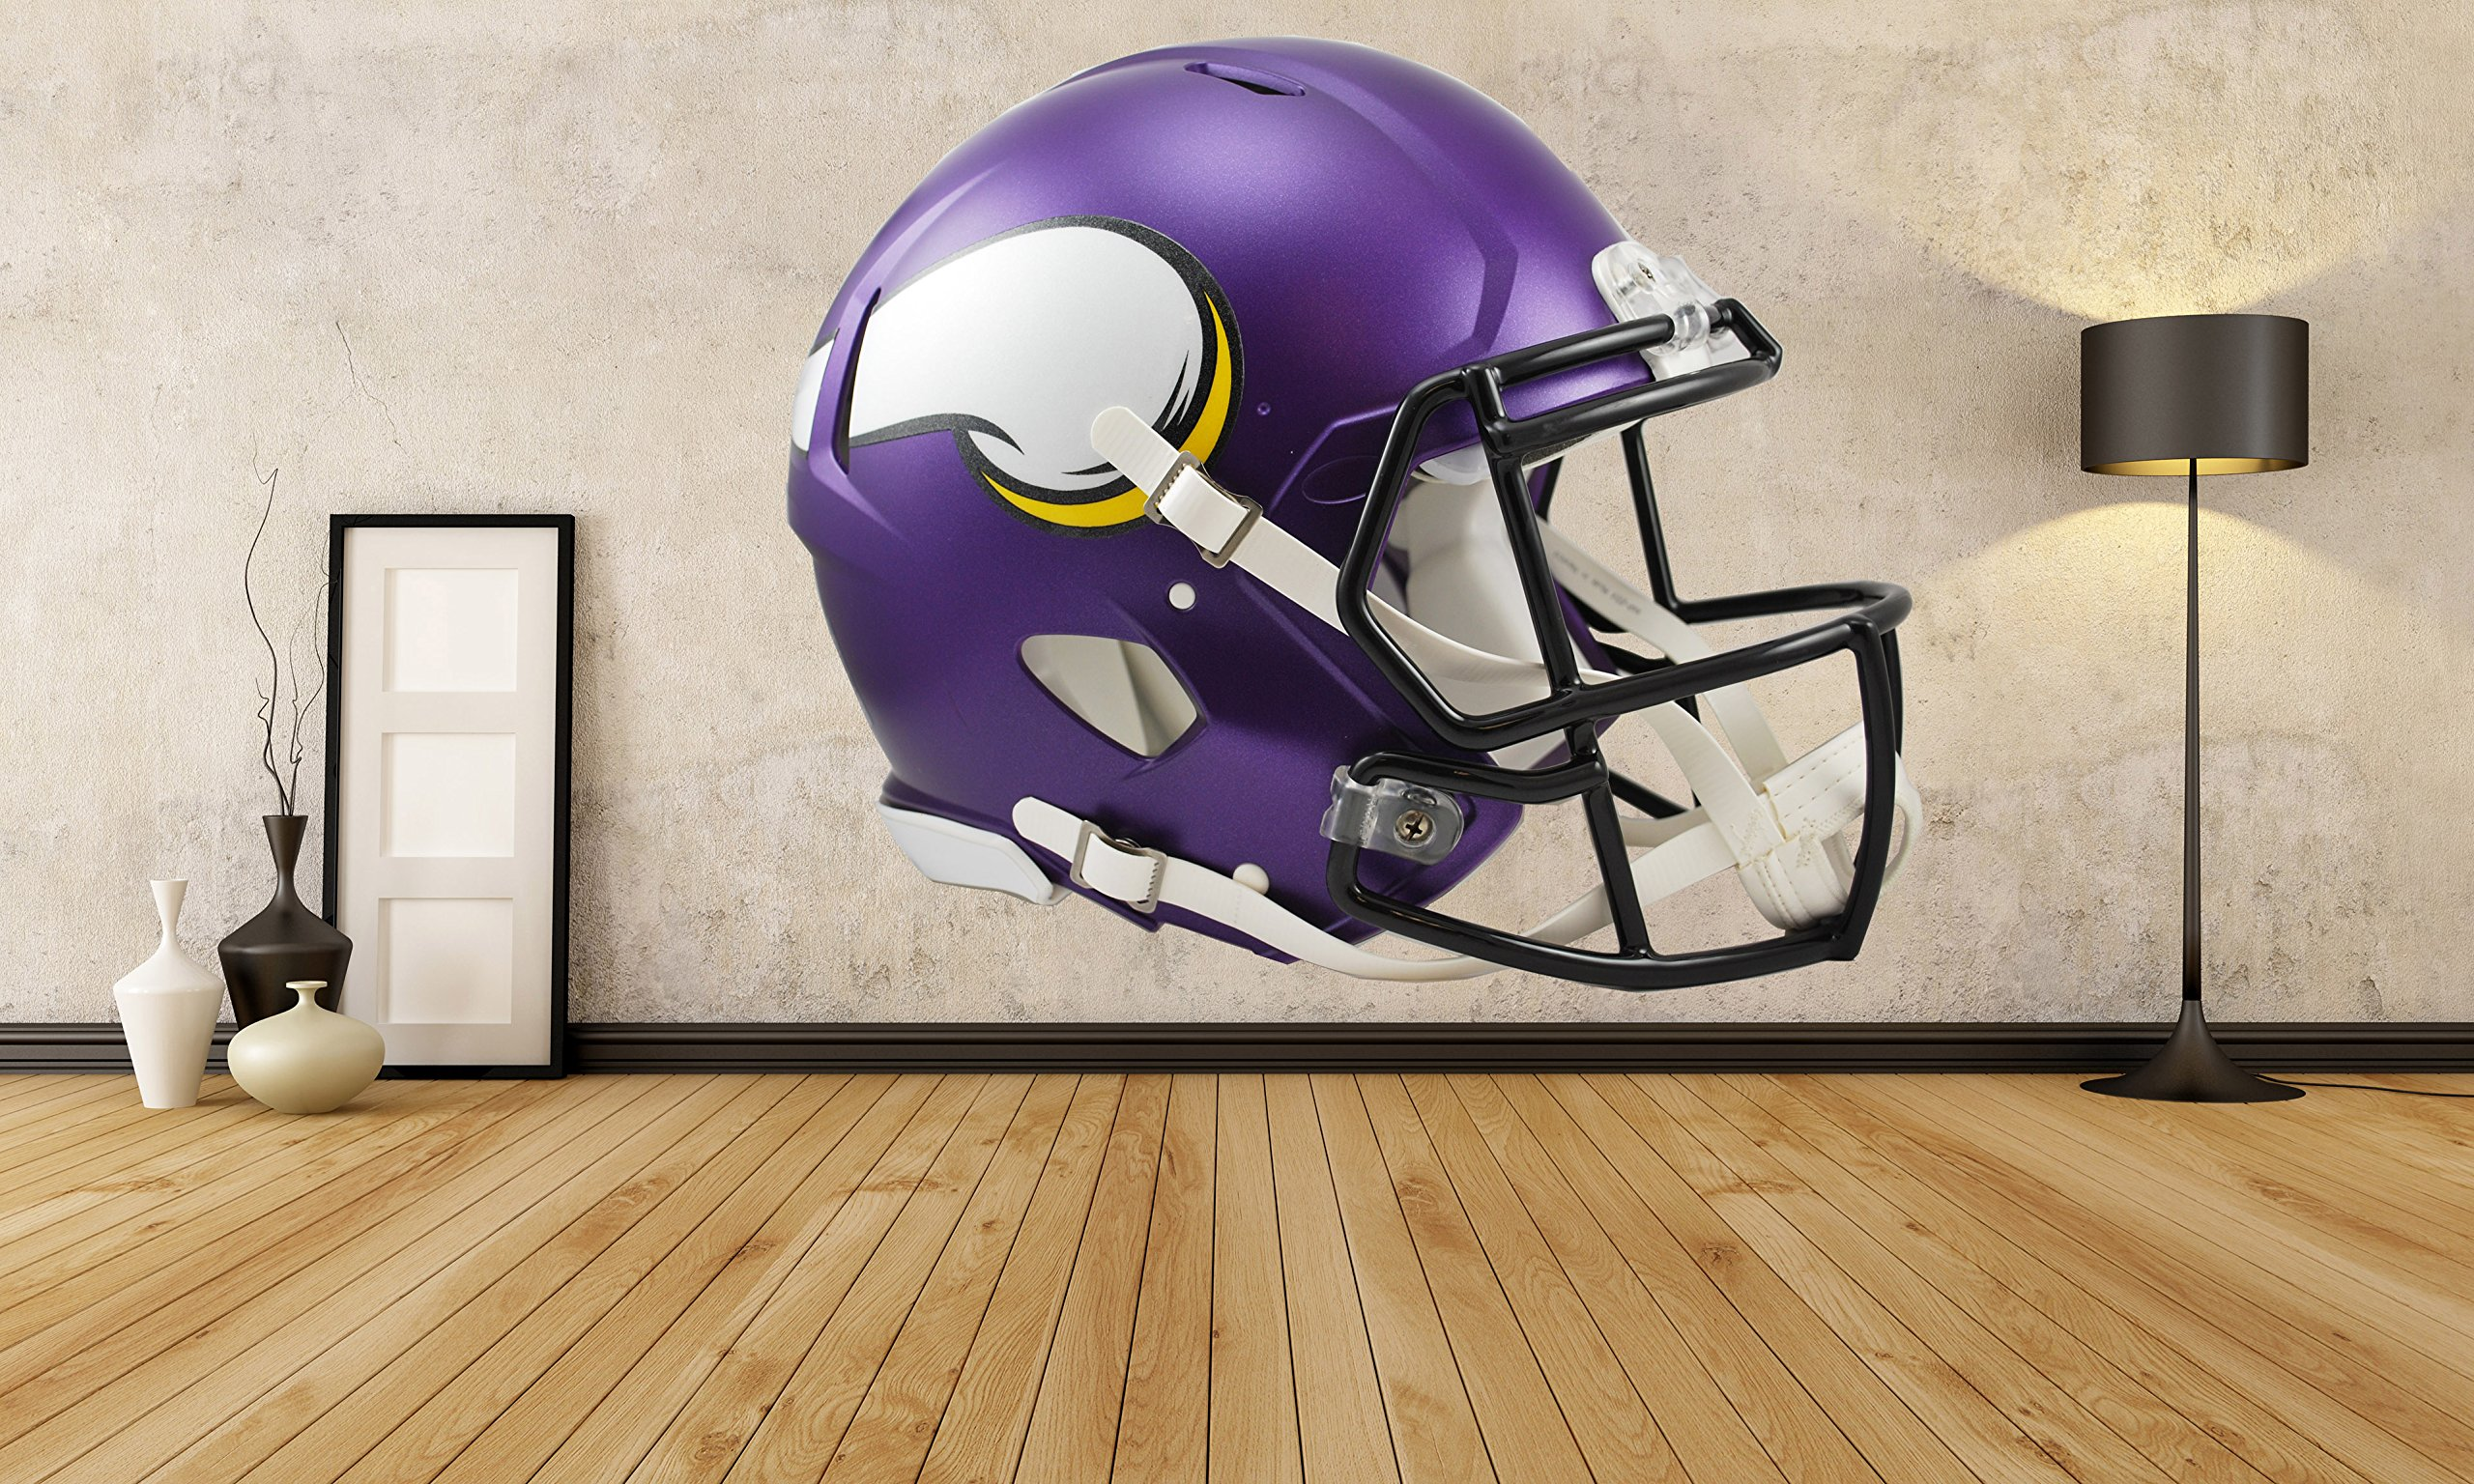 Minnesota Vikings Helmet sticker, Minnesota Vikings Helmet decal, Vikings decal, Vikings sticker, Minnesota Vikings home decor, Minnesota, Vikings bumper sticker, Vikings NFL sticker, vmb05 (20x20)